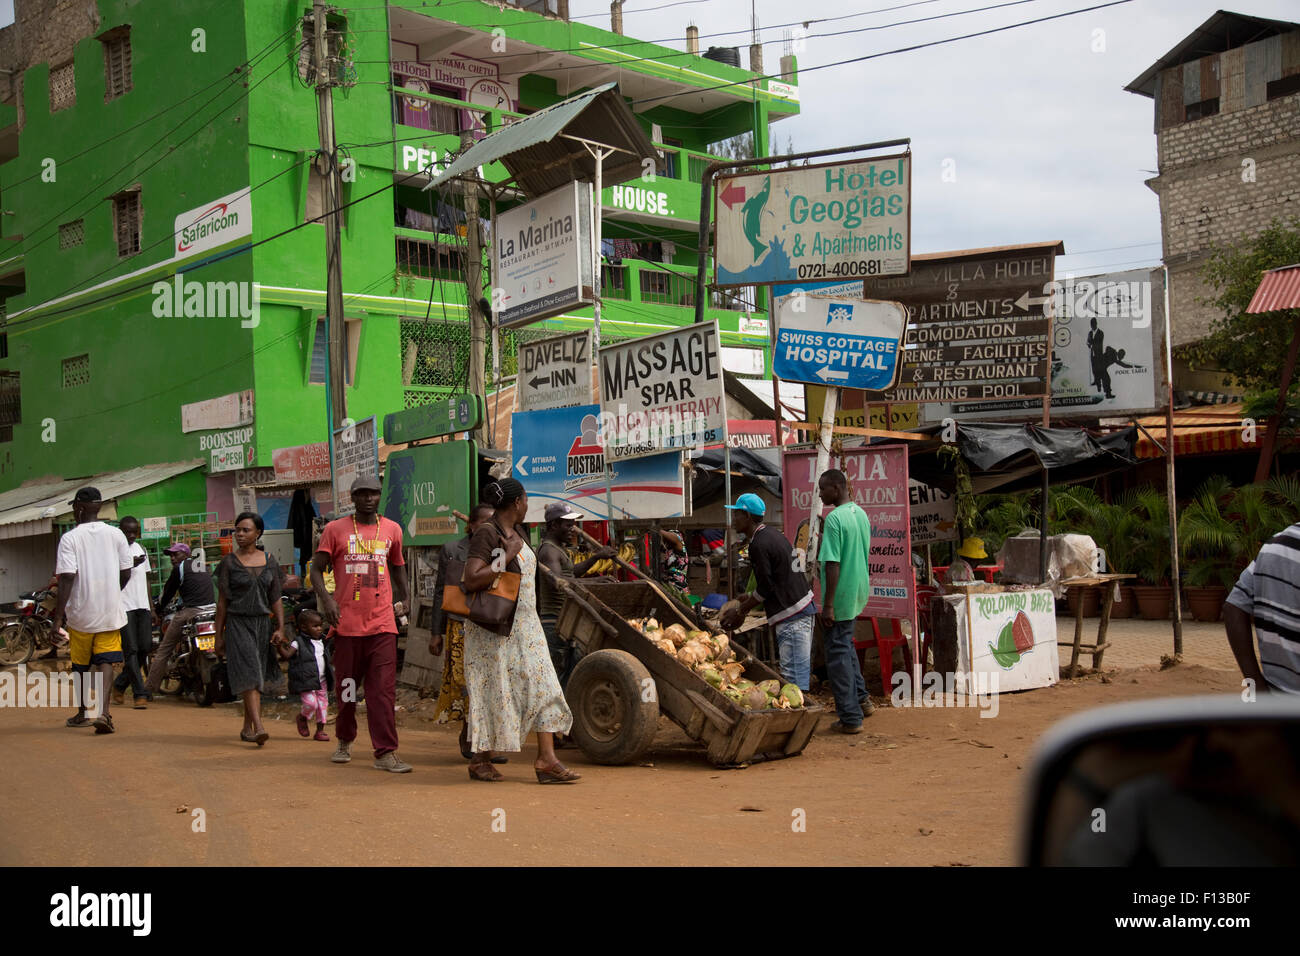 Busy street with advertising hoardings and billboards Mtwapa Mombasa Kenya - Stock Image